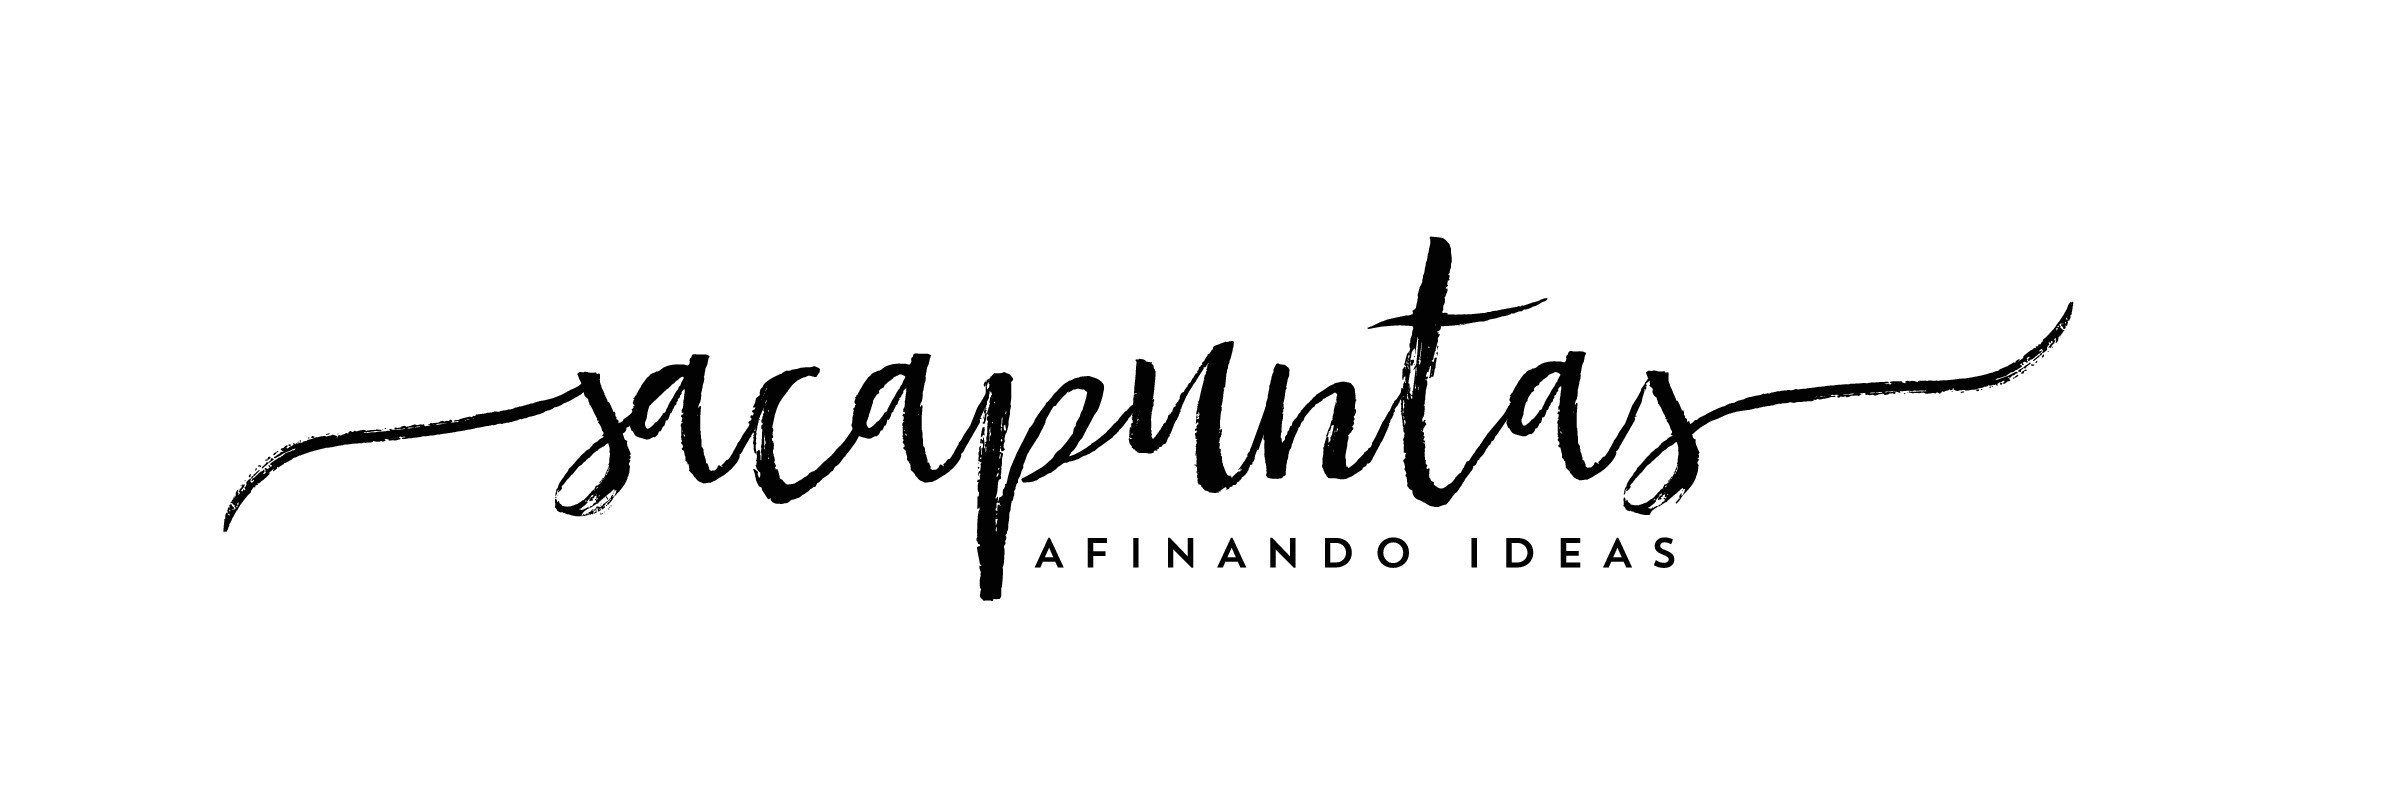 Social media startup looking for a modern and fun logo